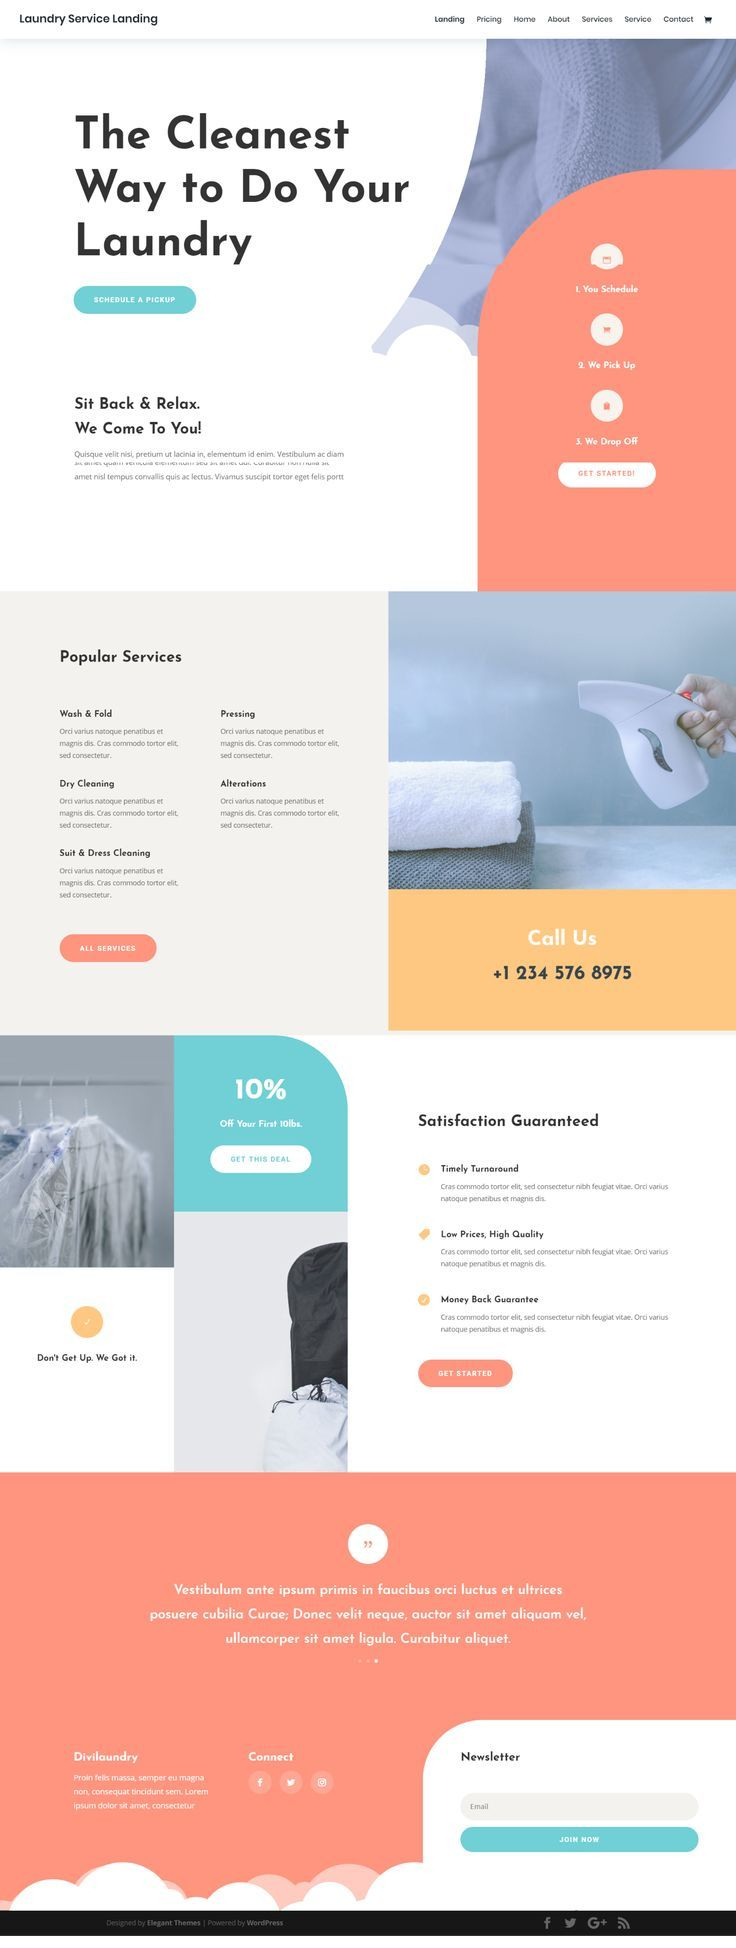 Laundry Service Landing Page | Laundry Service, Website throughout Amazing Free Laundromat Business Plan Template